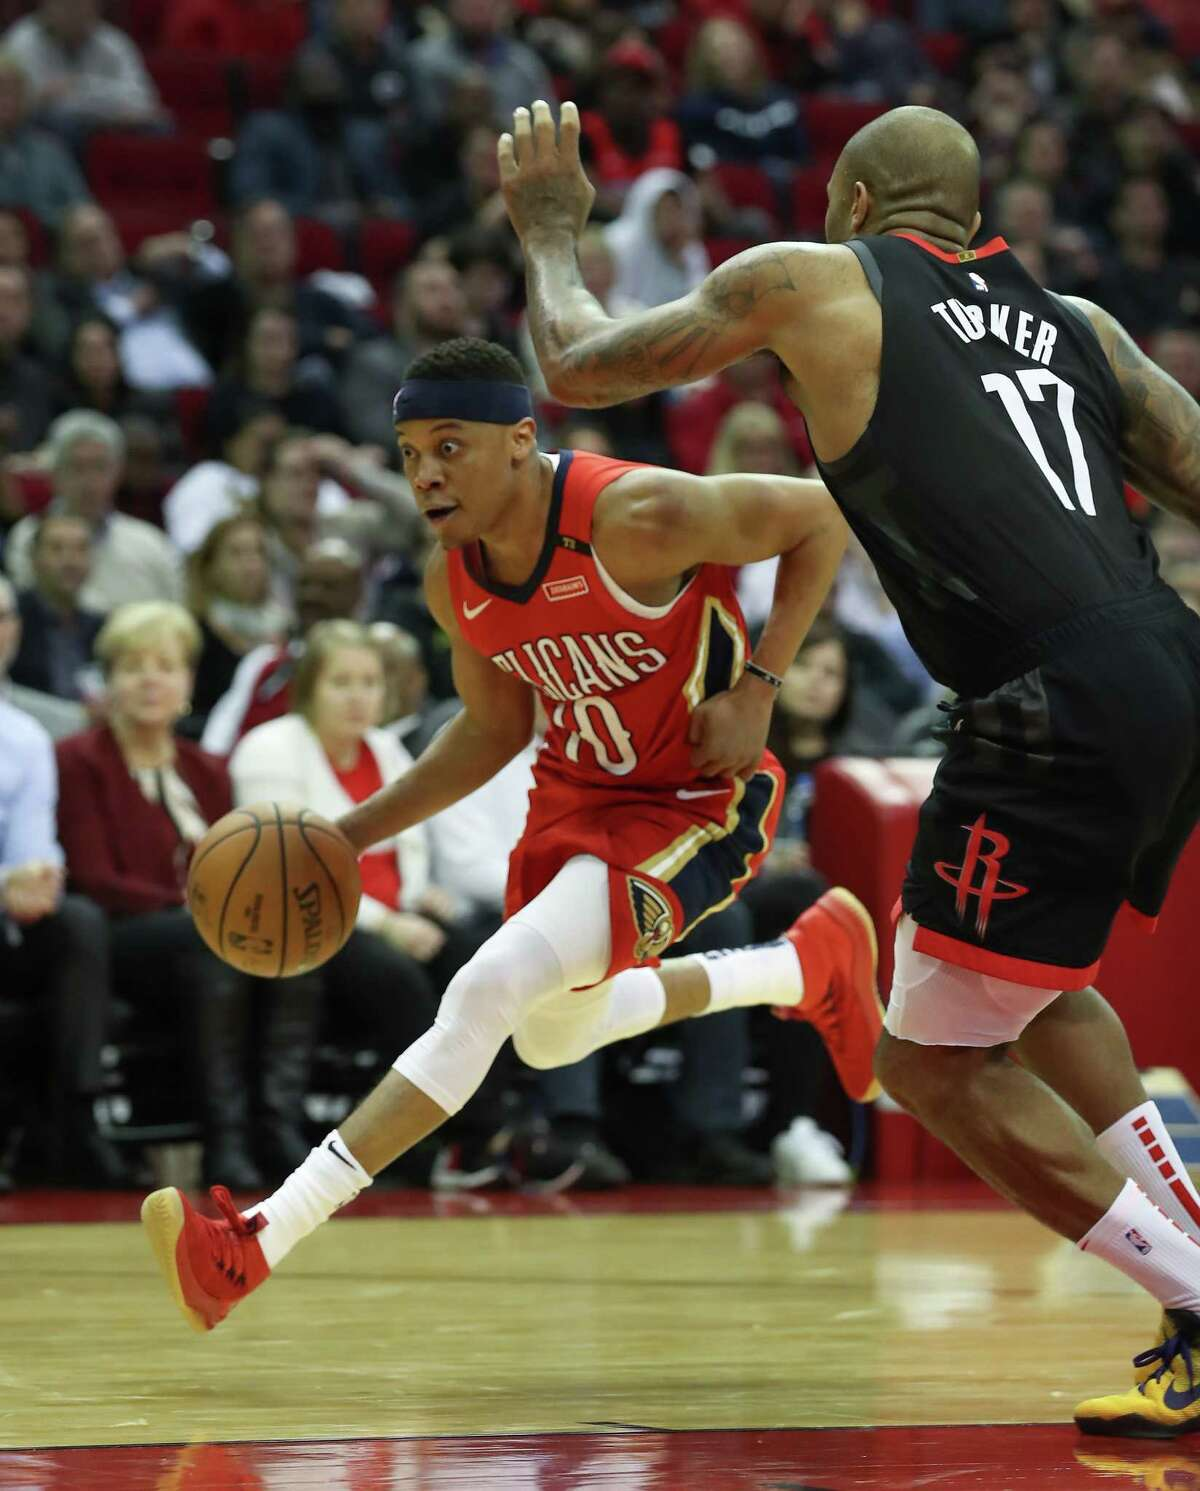 New Orleans Pelicans guard Tim Frazier (10) drives around Houston Rockets forward PJ Tucker (17) during the 2nd half of an NBA basketball game at Toyota Center on Tuesday, Jan. 29, 2019, in Houston.